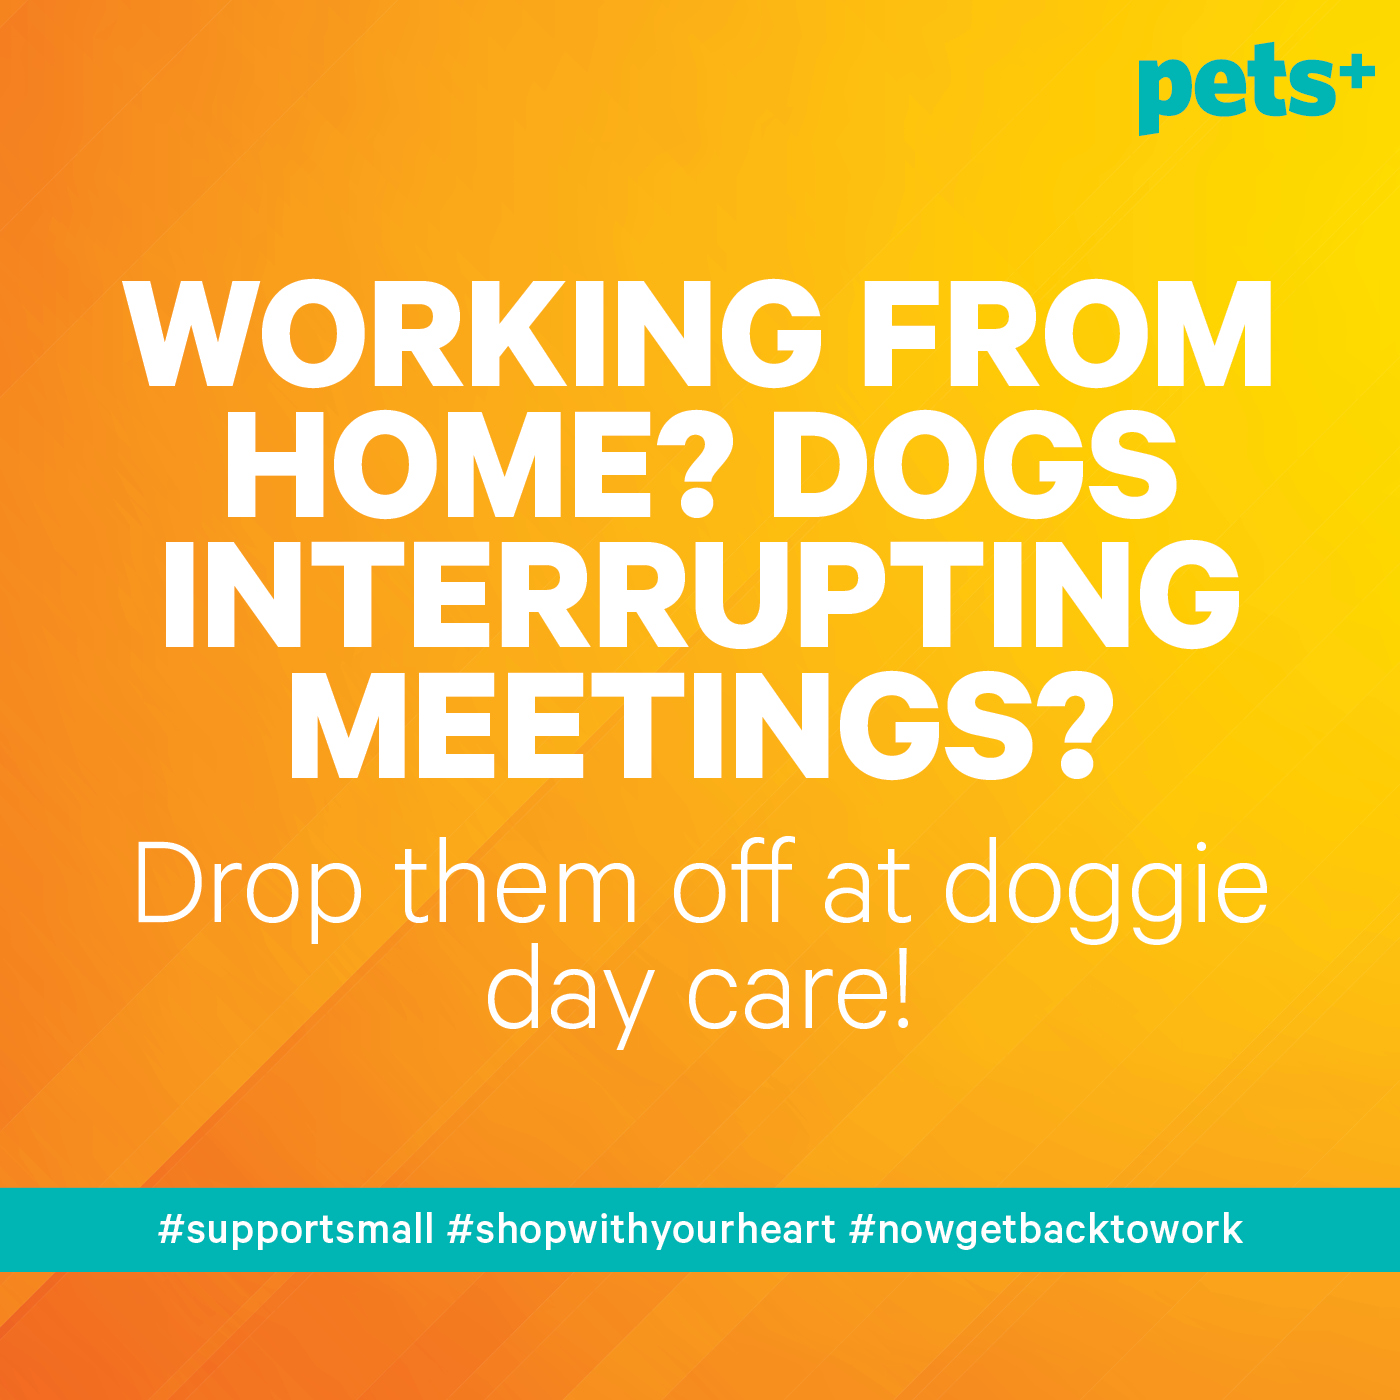 11 Social Media Graphics to Share With Your Pet Business Customers During the COVID-19 Pandemic